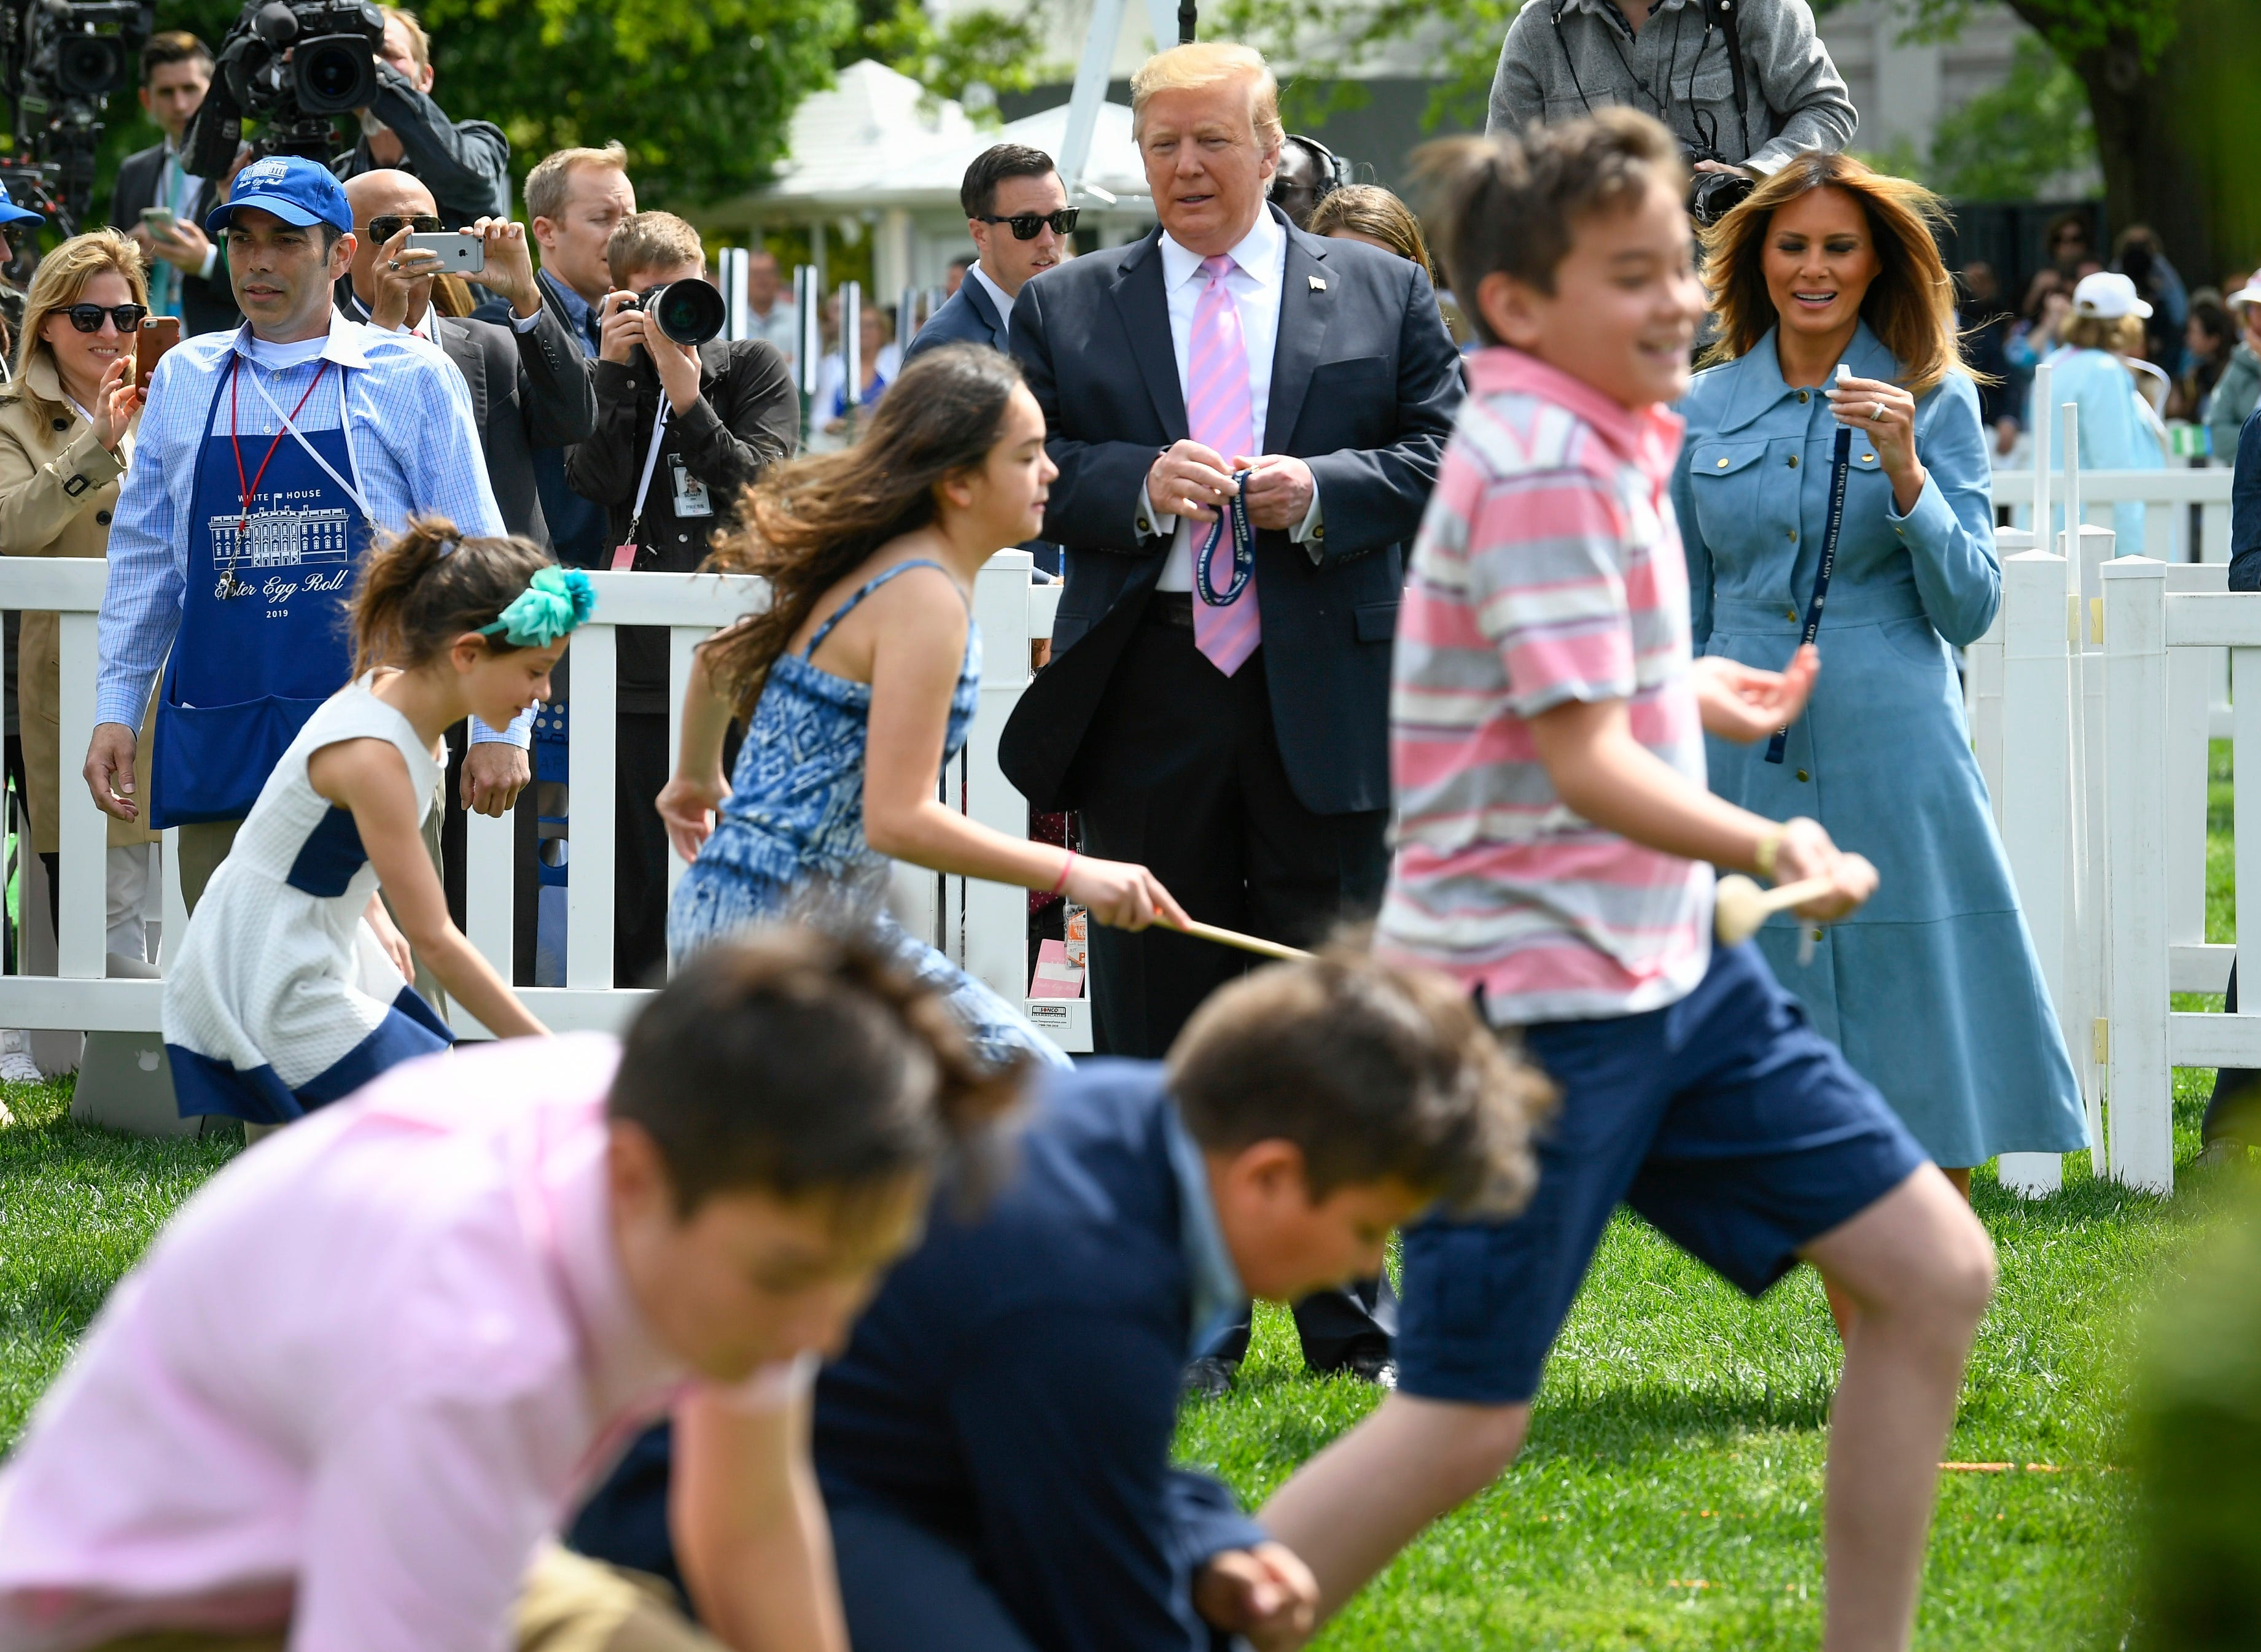 Melania Trump hosts the 141st annual White House Easter Egg Roll